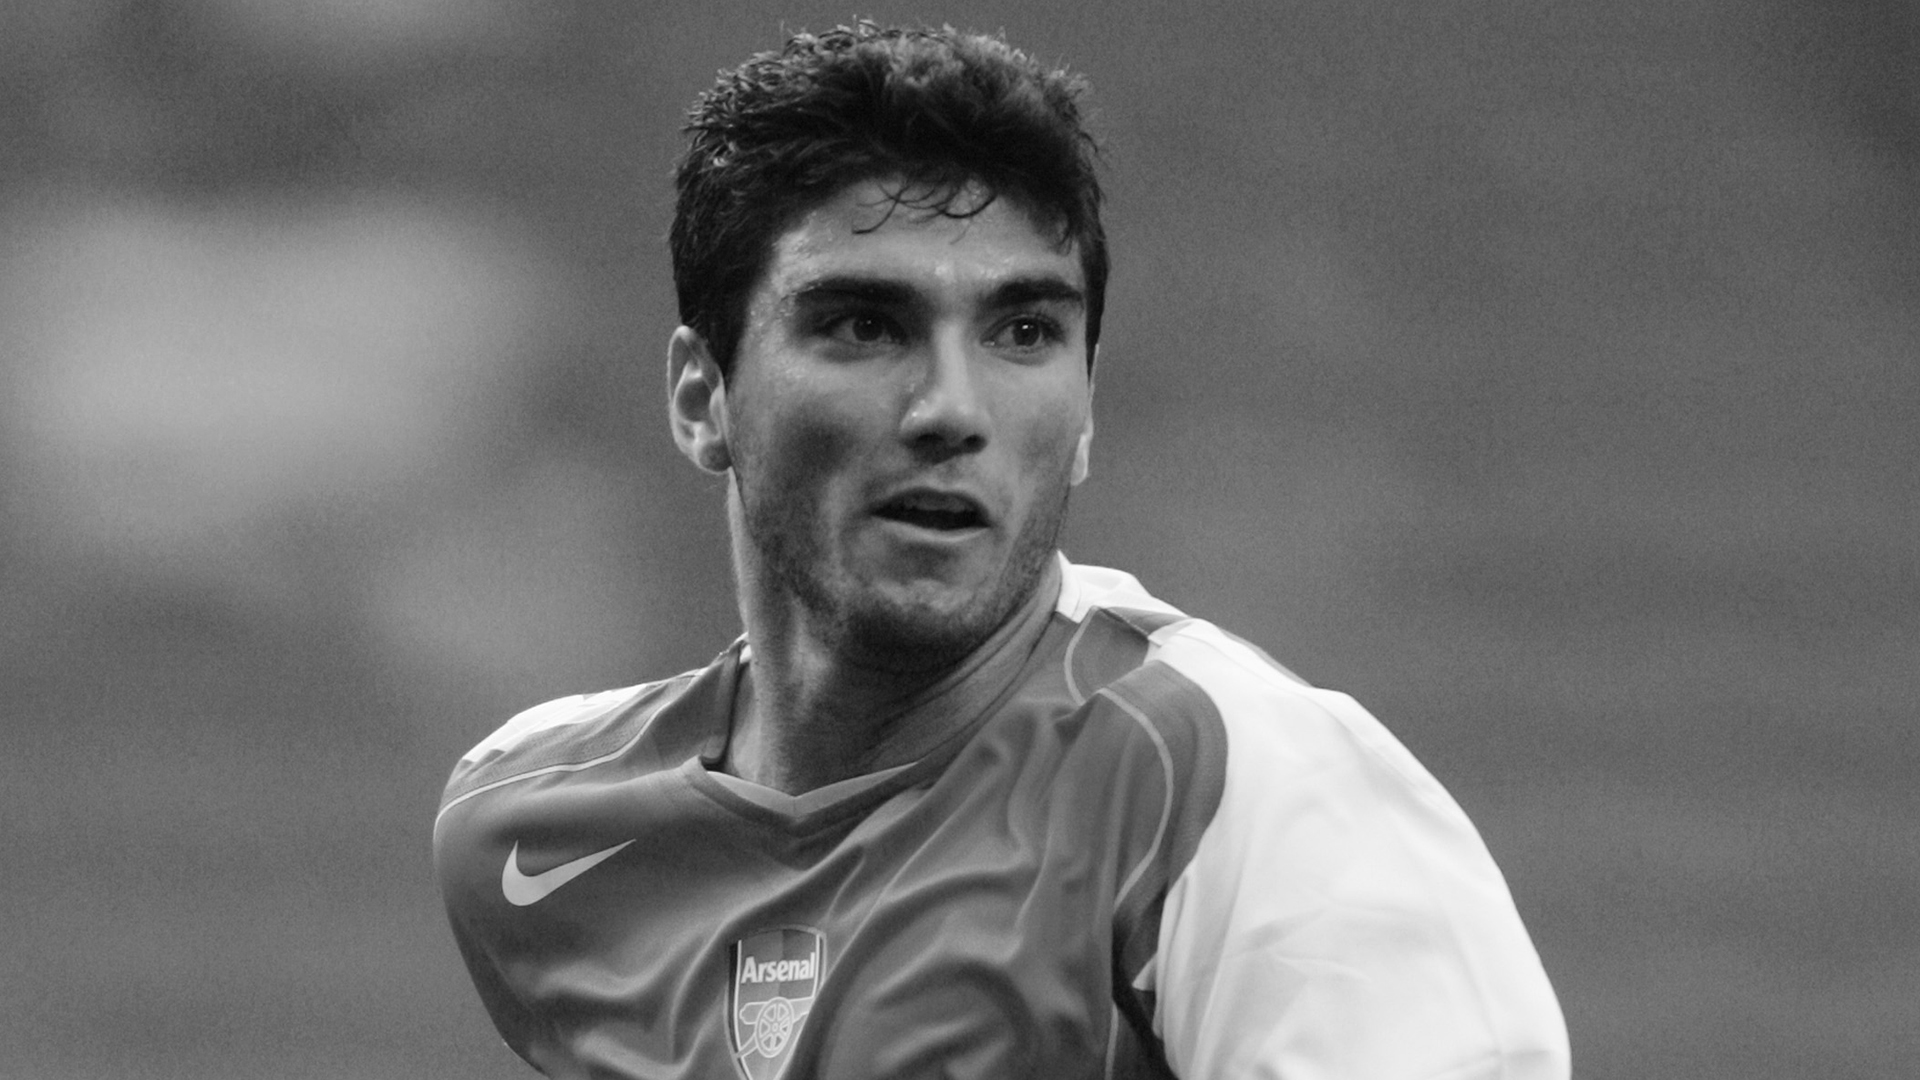 Former Arsenal winger Jose Antonio Reyes tragically dies in traffic accident